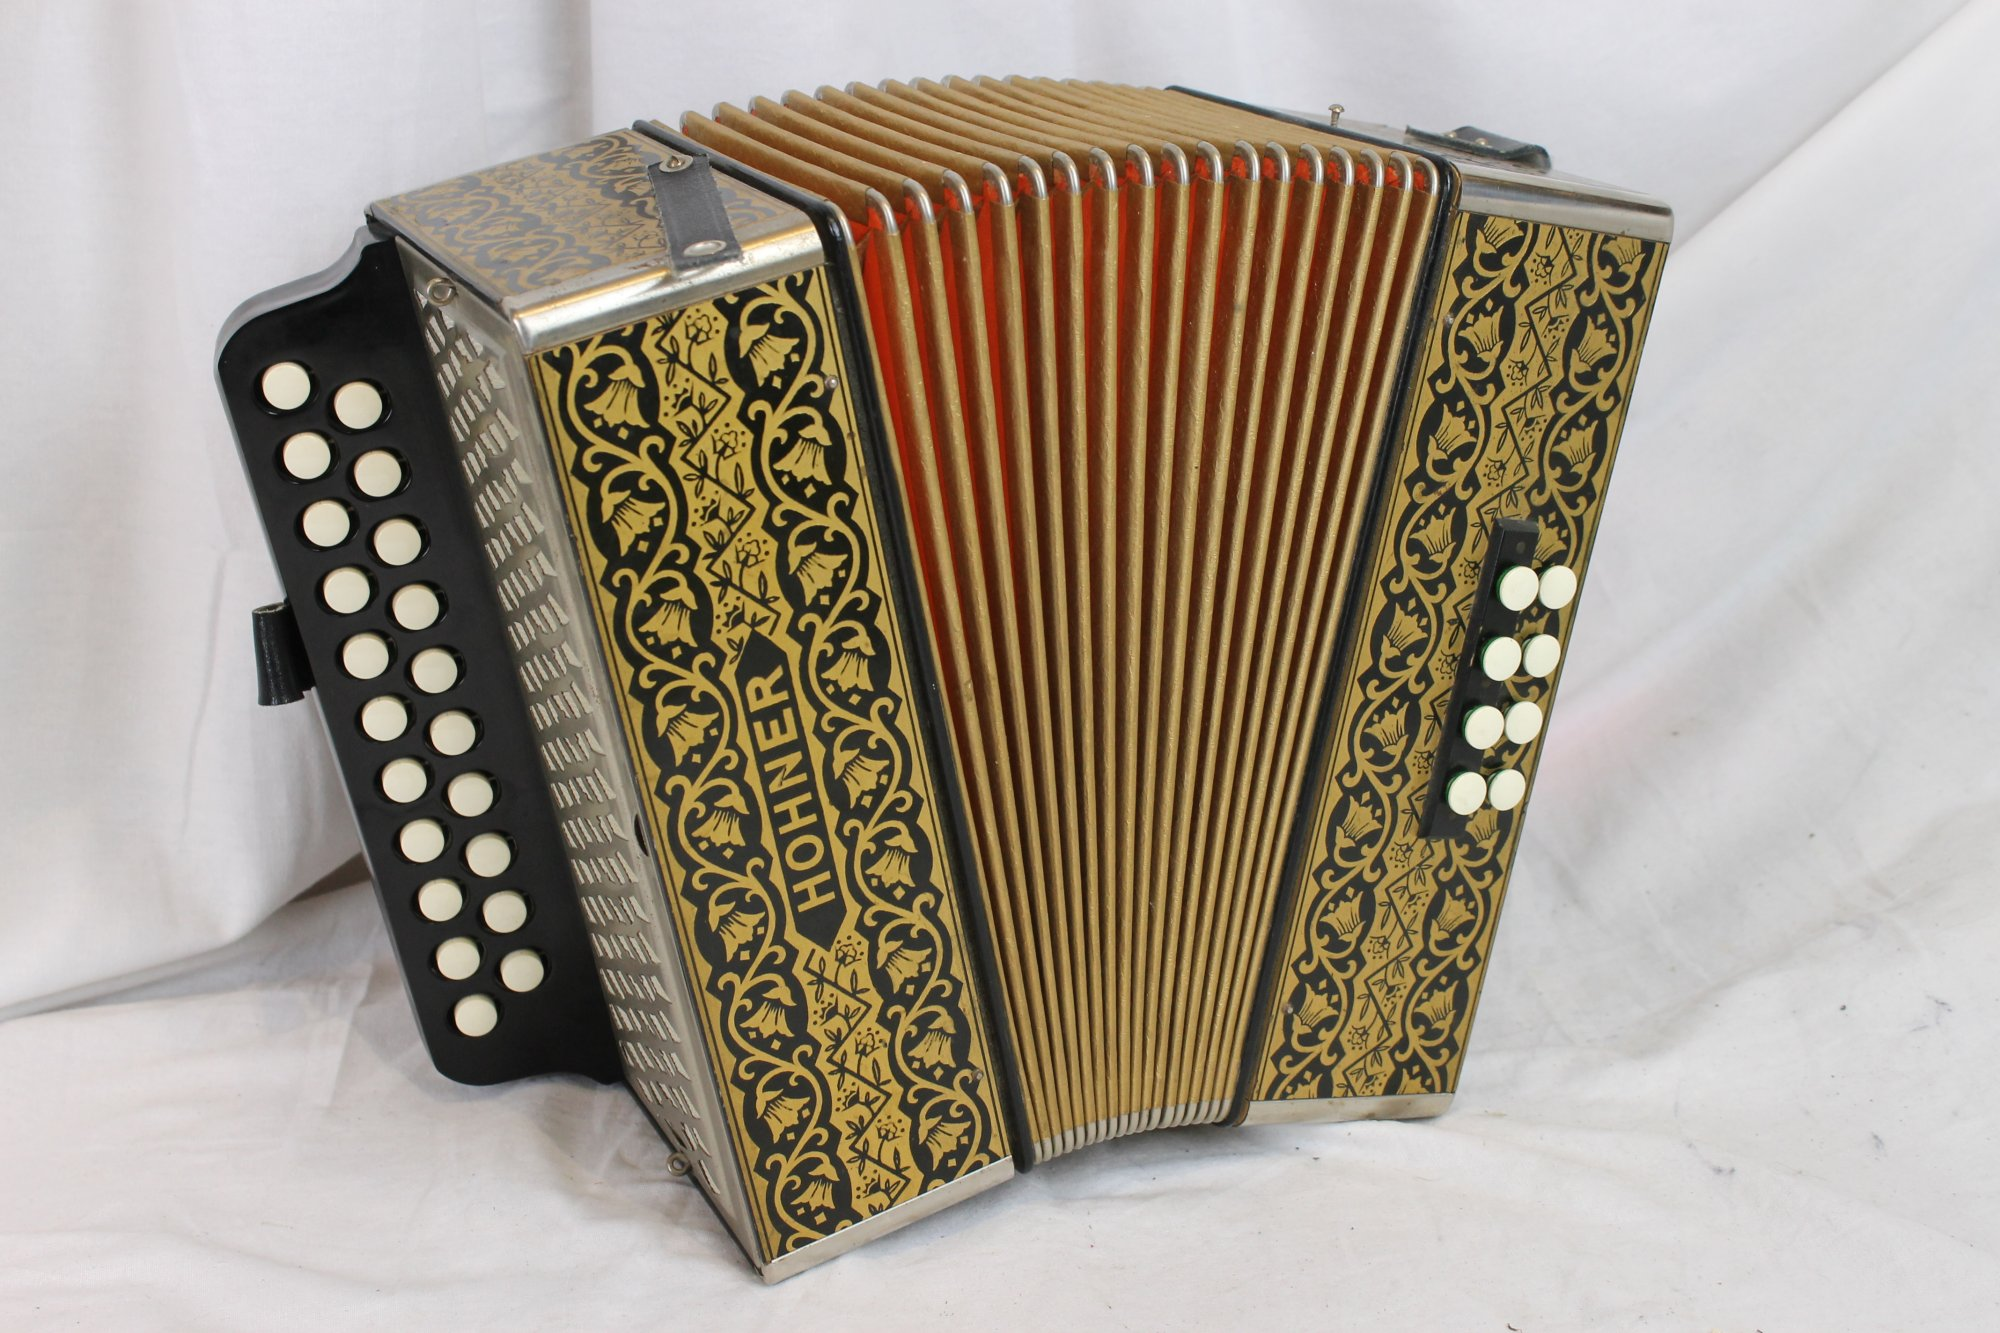 3072 - Hohner Pokerwork HA-2815 Diatonic Button Accordion CF 21 8